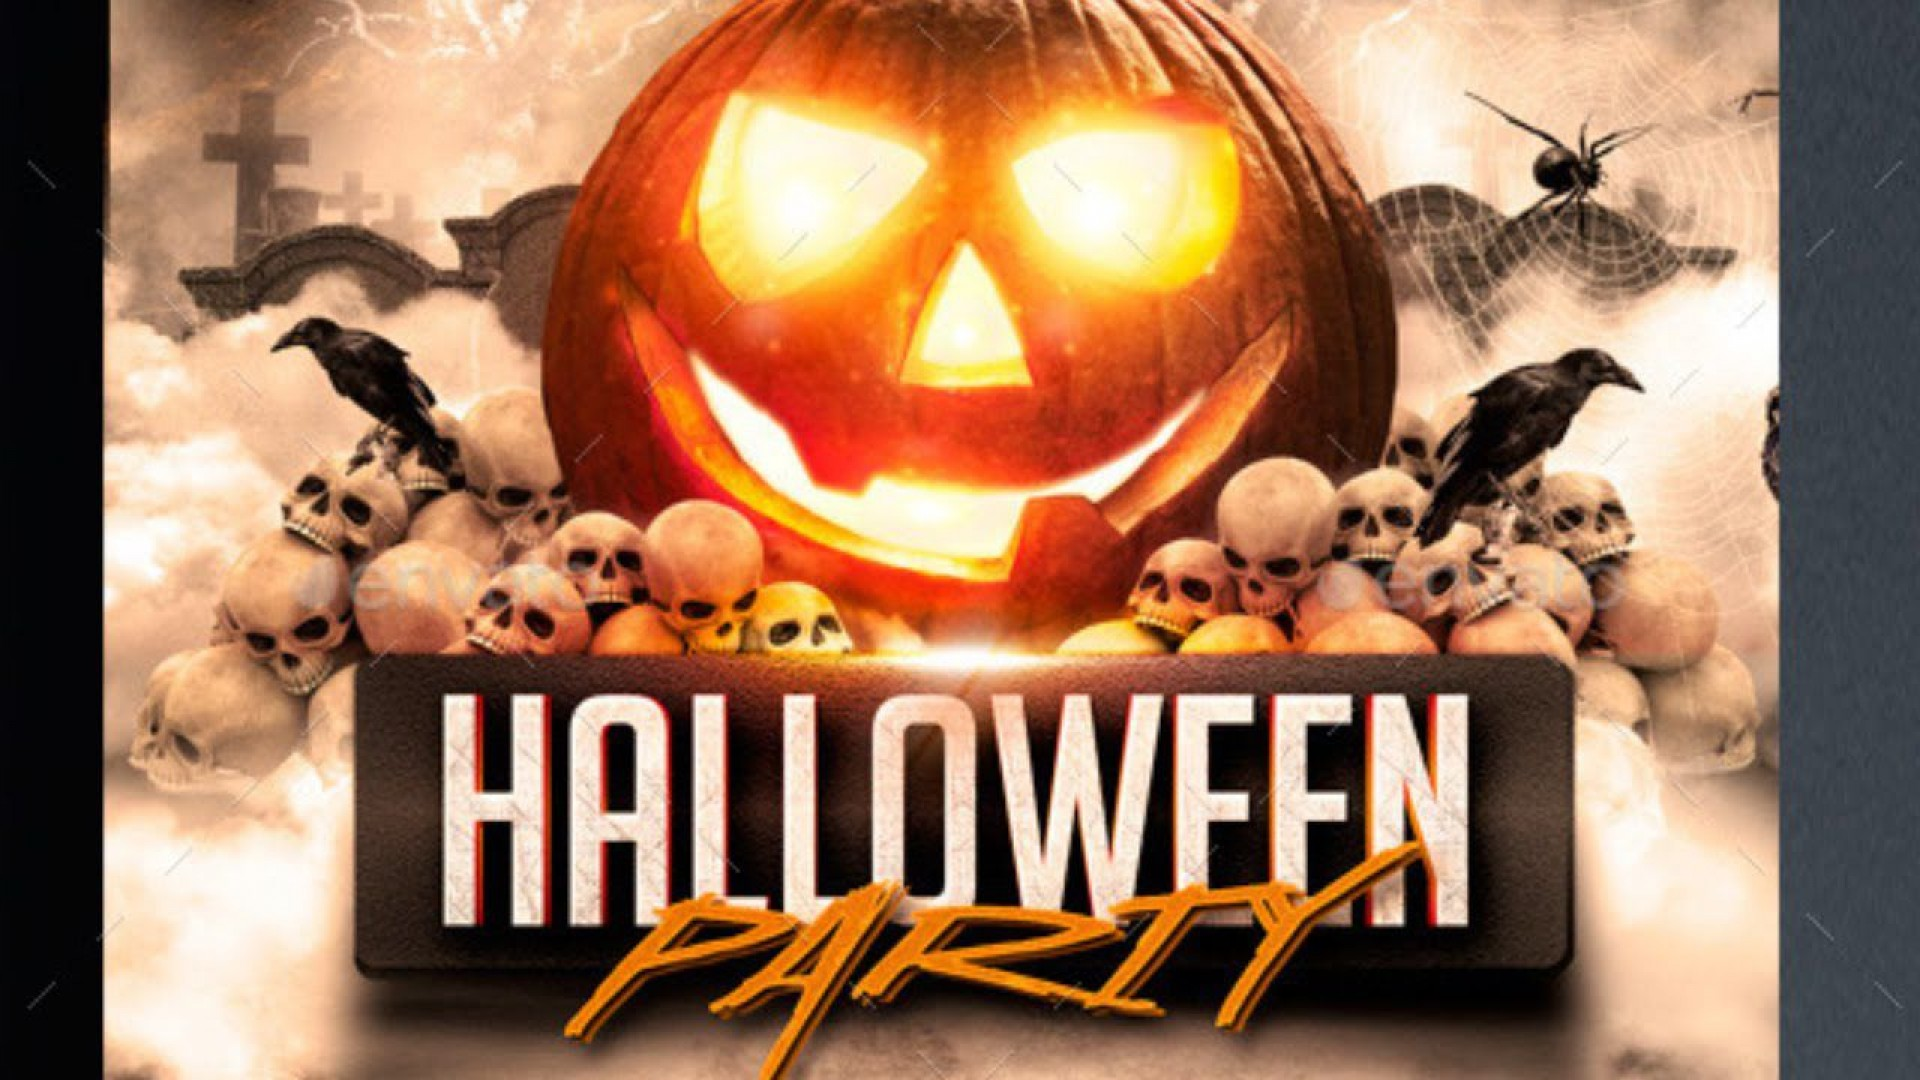 008 Phenomenal Free Halloween Party Flyer Template Example  Templates1920